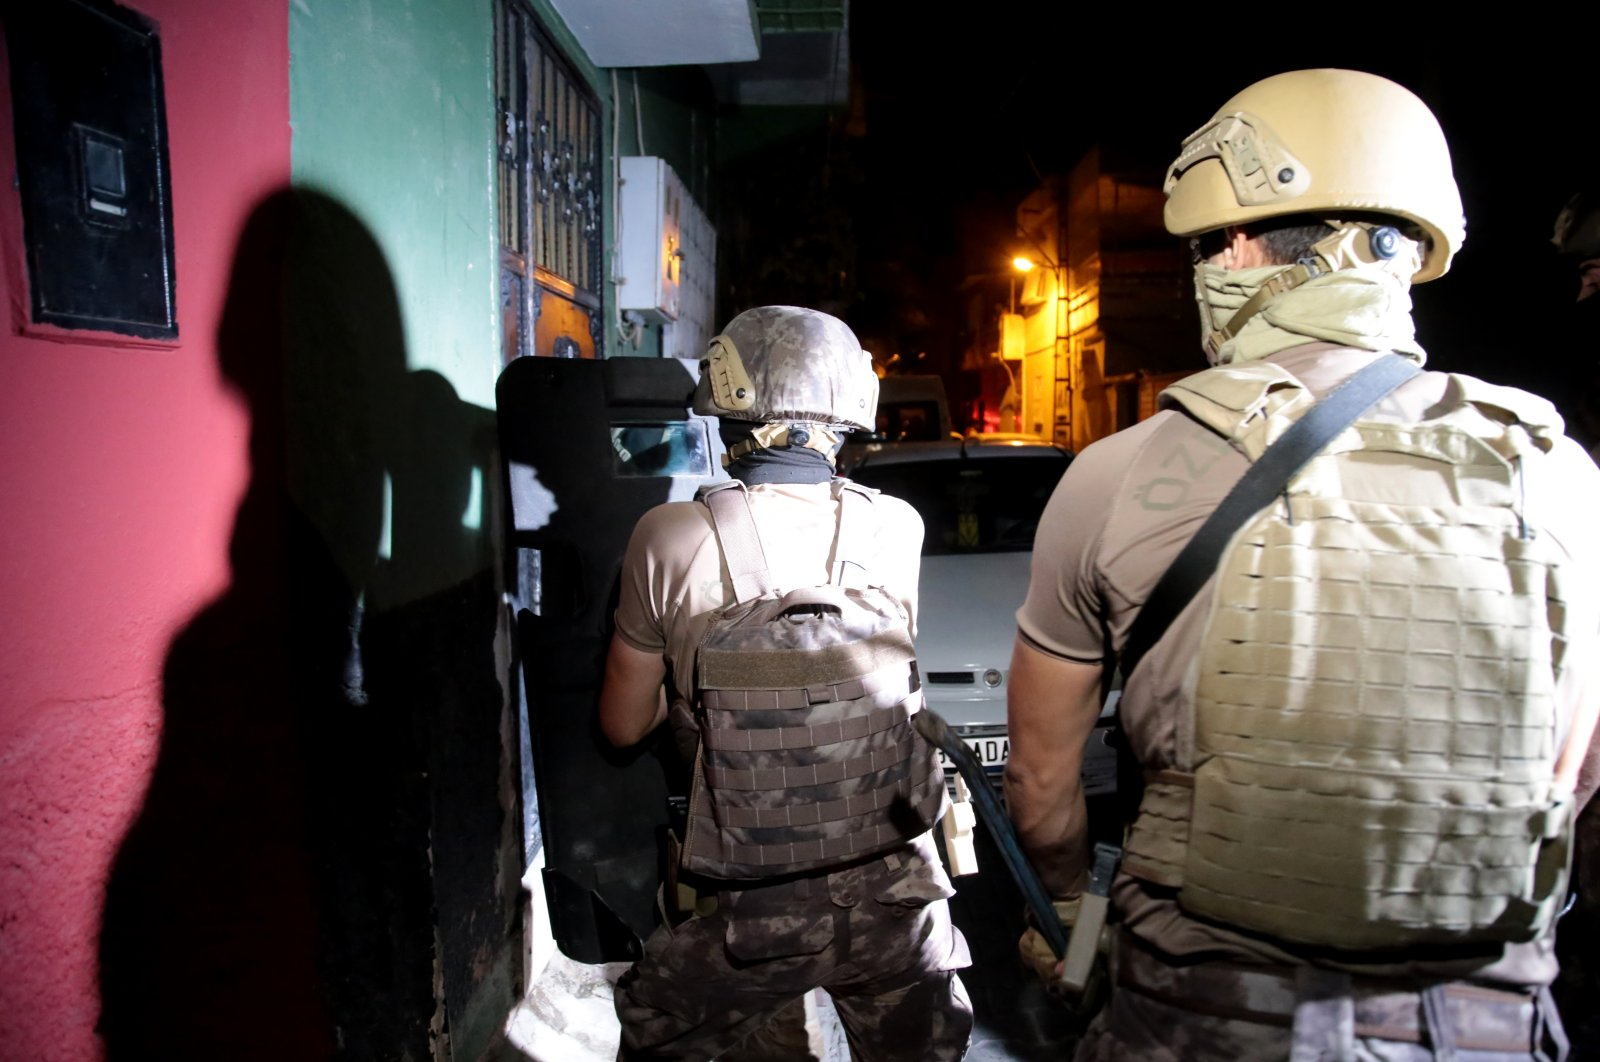 Turkish counterterrorism squads carry out a raid against a suspected Daesh terrorist cell in Adana province, Turkey,  Aug. 18, 2021. (AA File Photo)